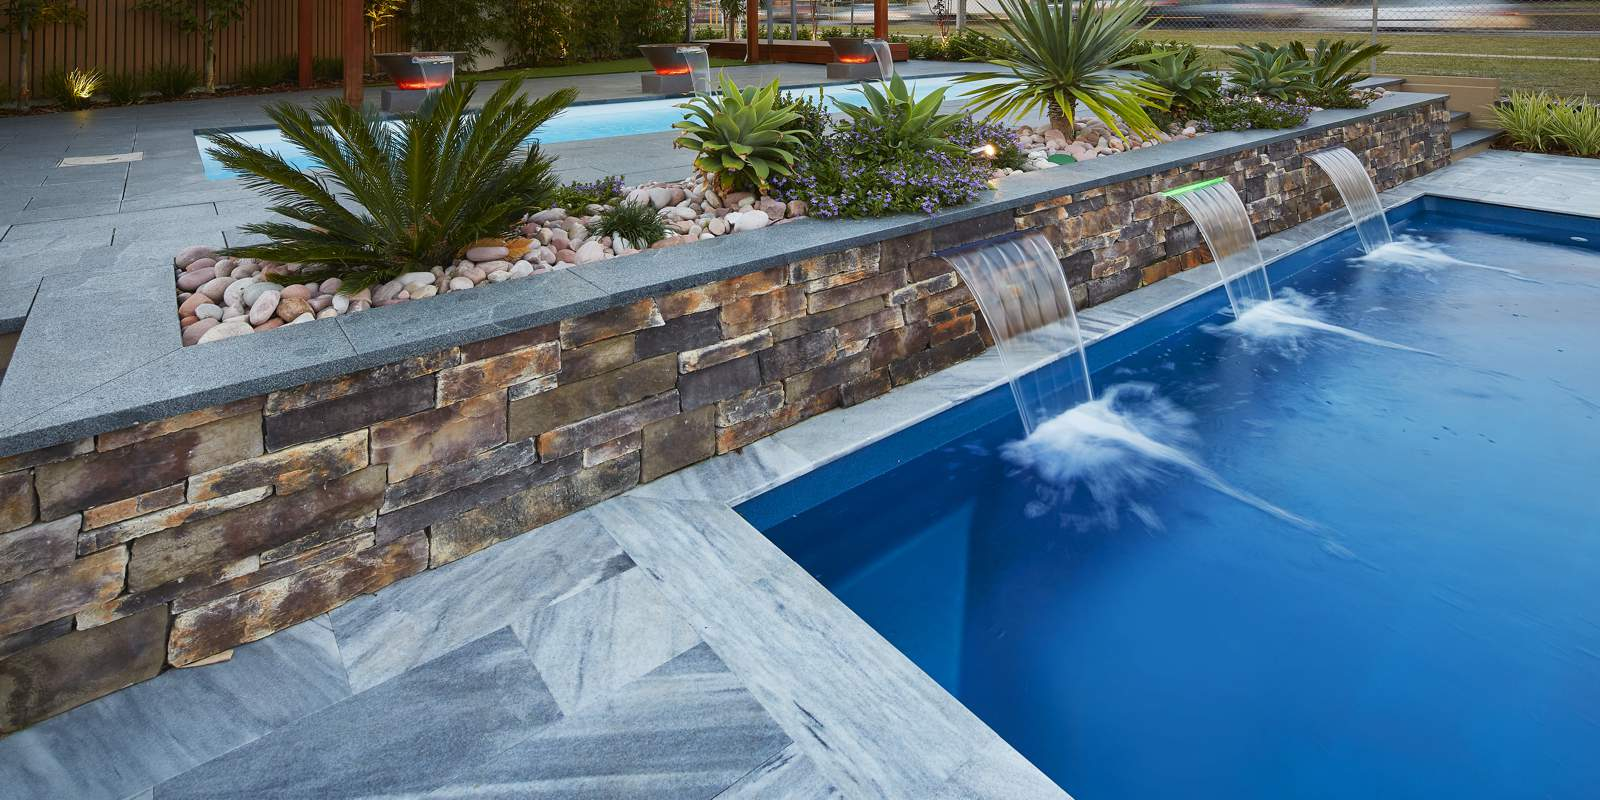 Our landscape design services create unique gardens that reflect your personal style